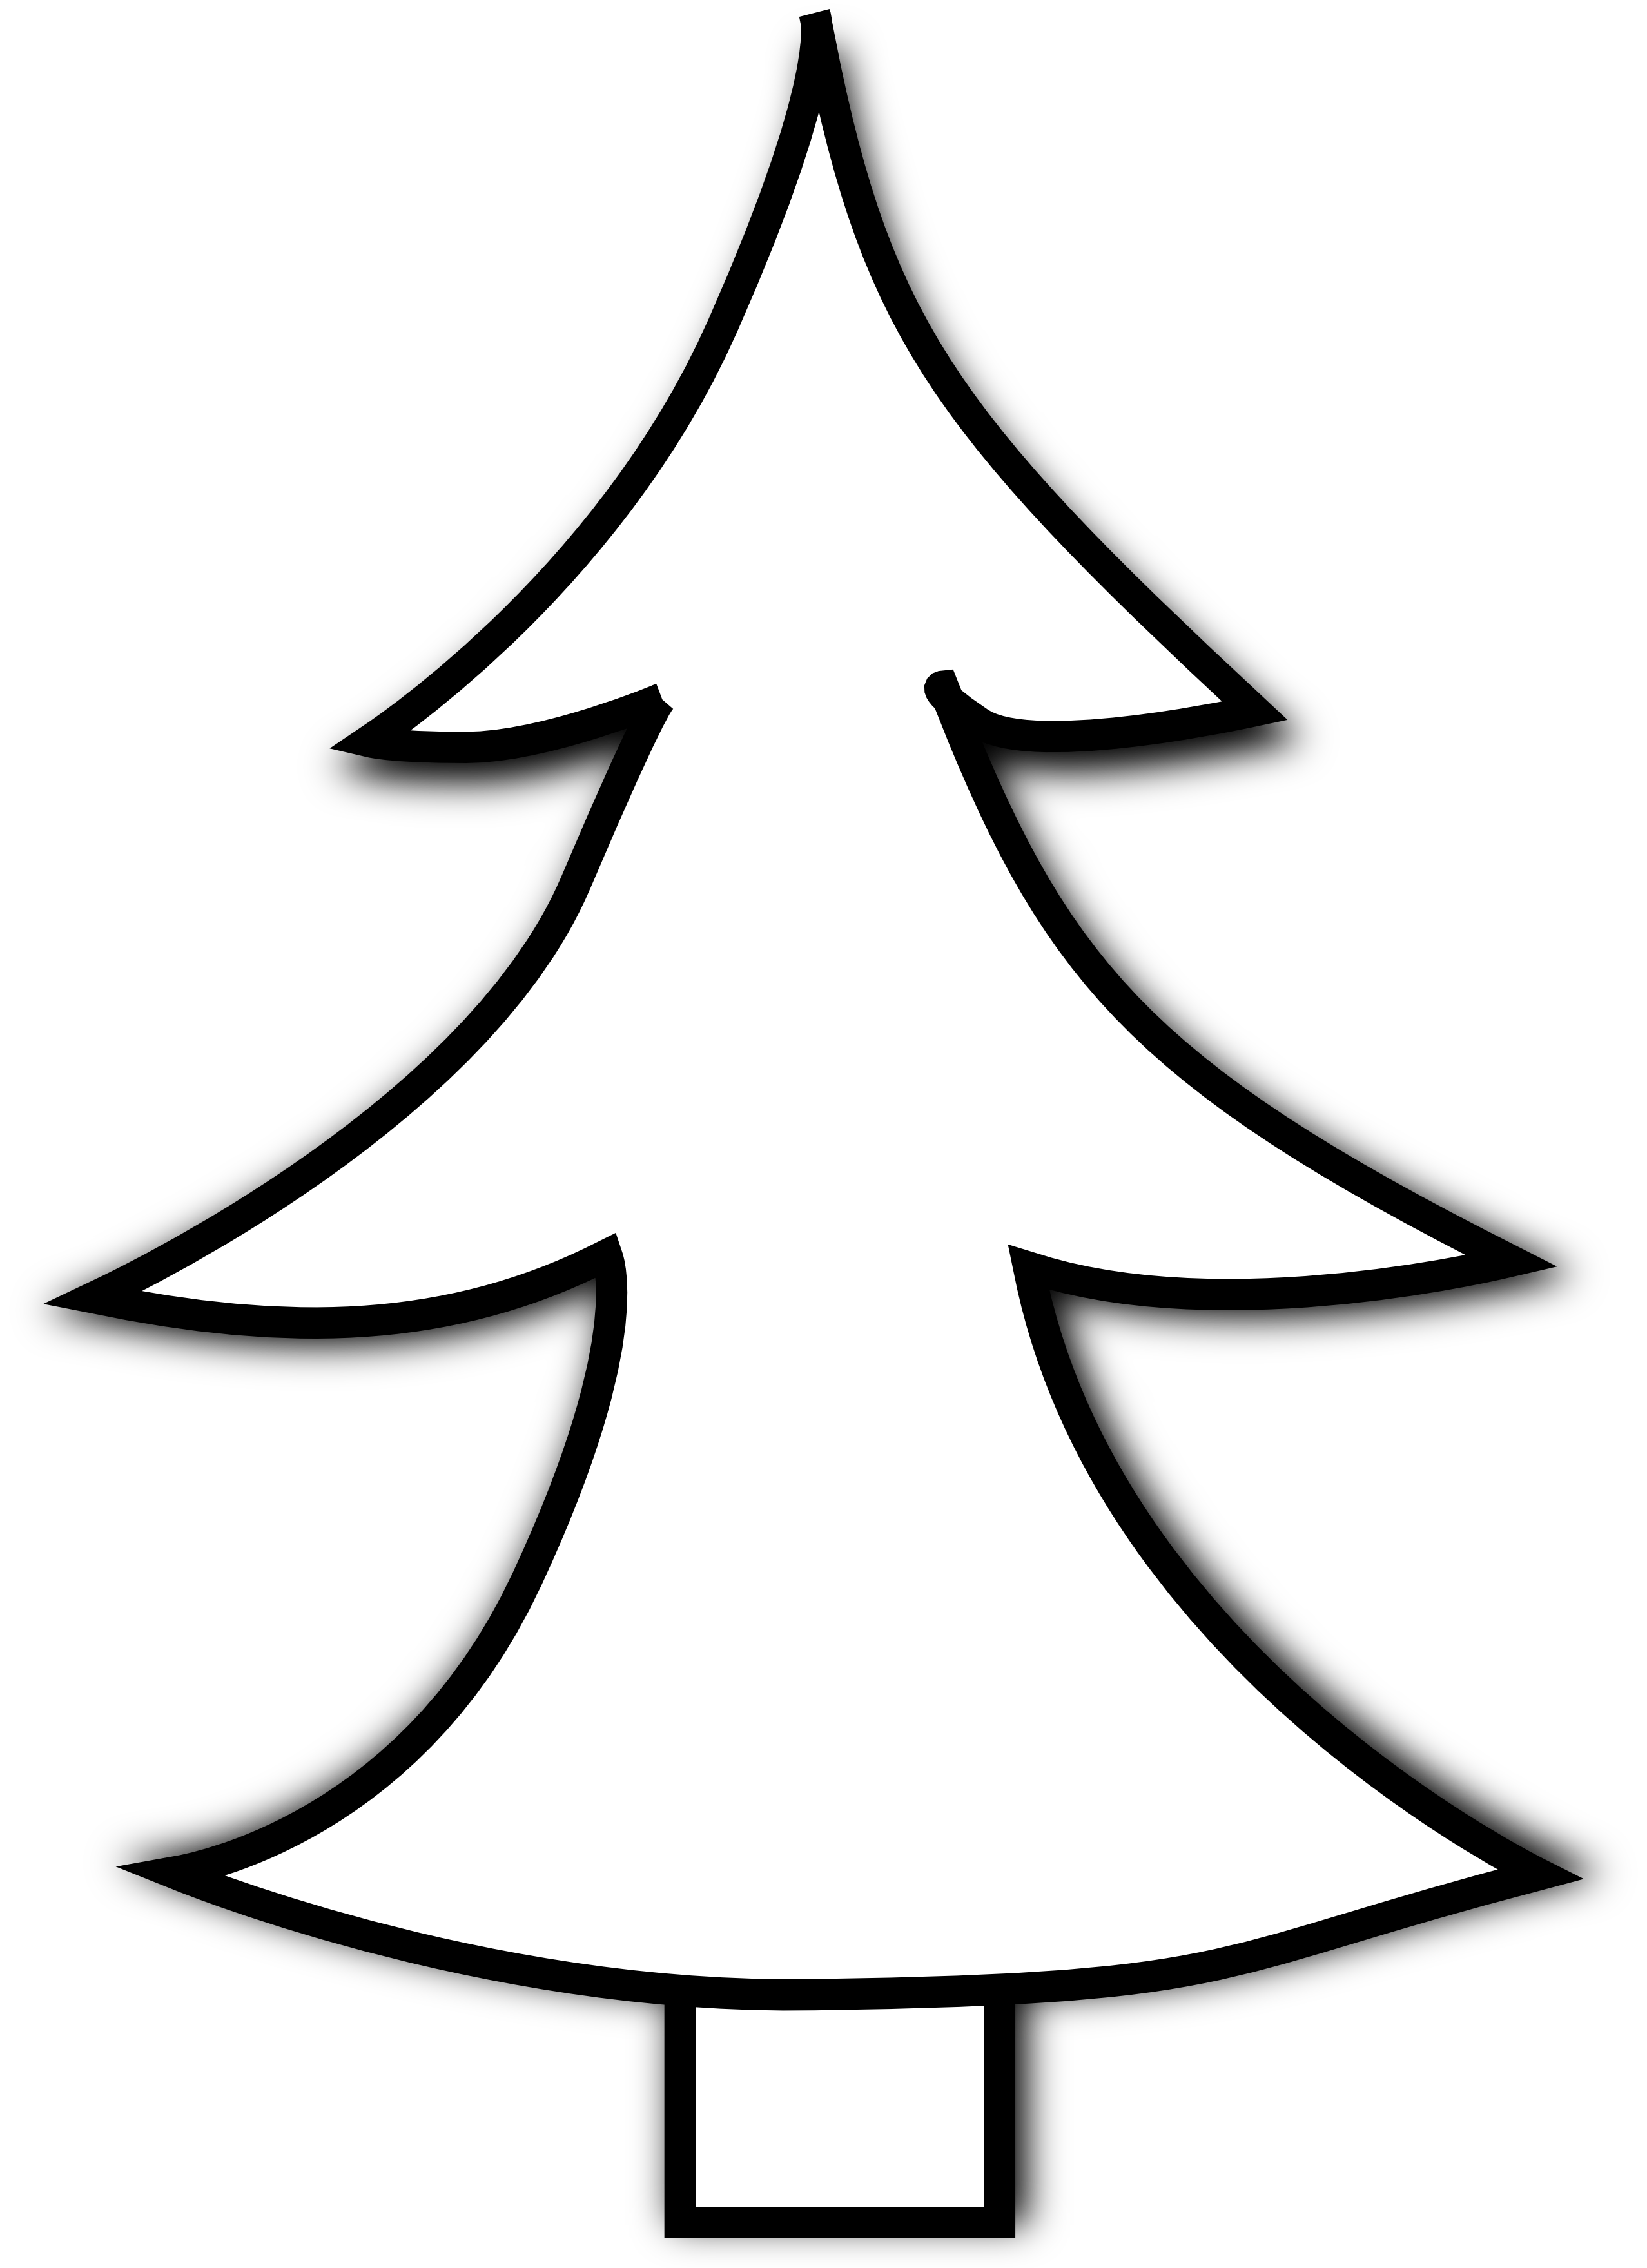 Christmas Tree Clipart Black And White-christmas tree clipart black and white-3